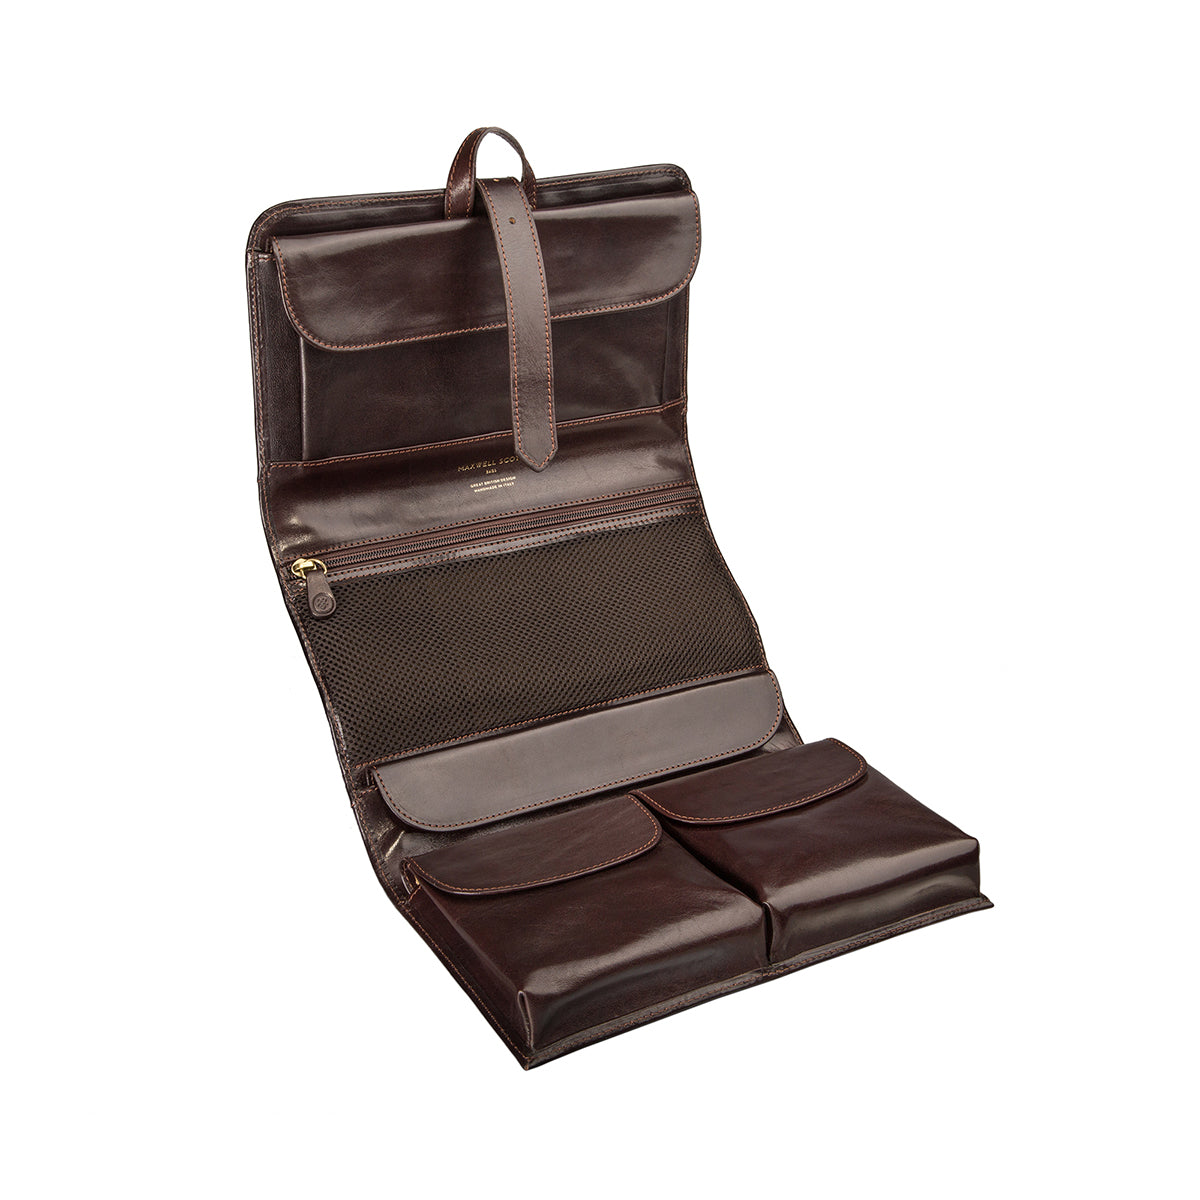 Image 5 of the 'Pratello' Dark Chocolate Veg-Tanned Leather Wash Bag